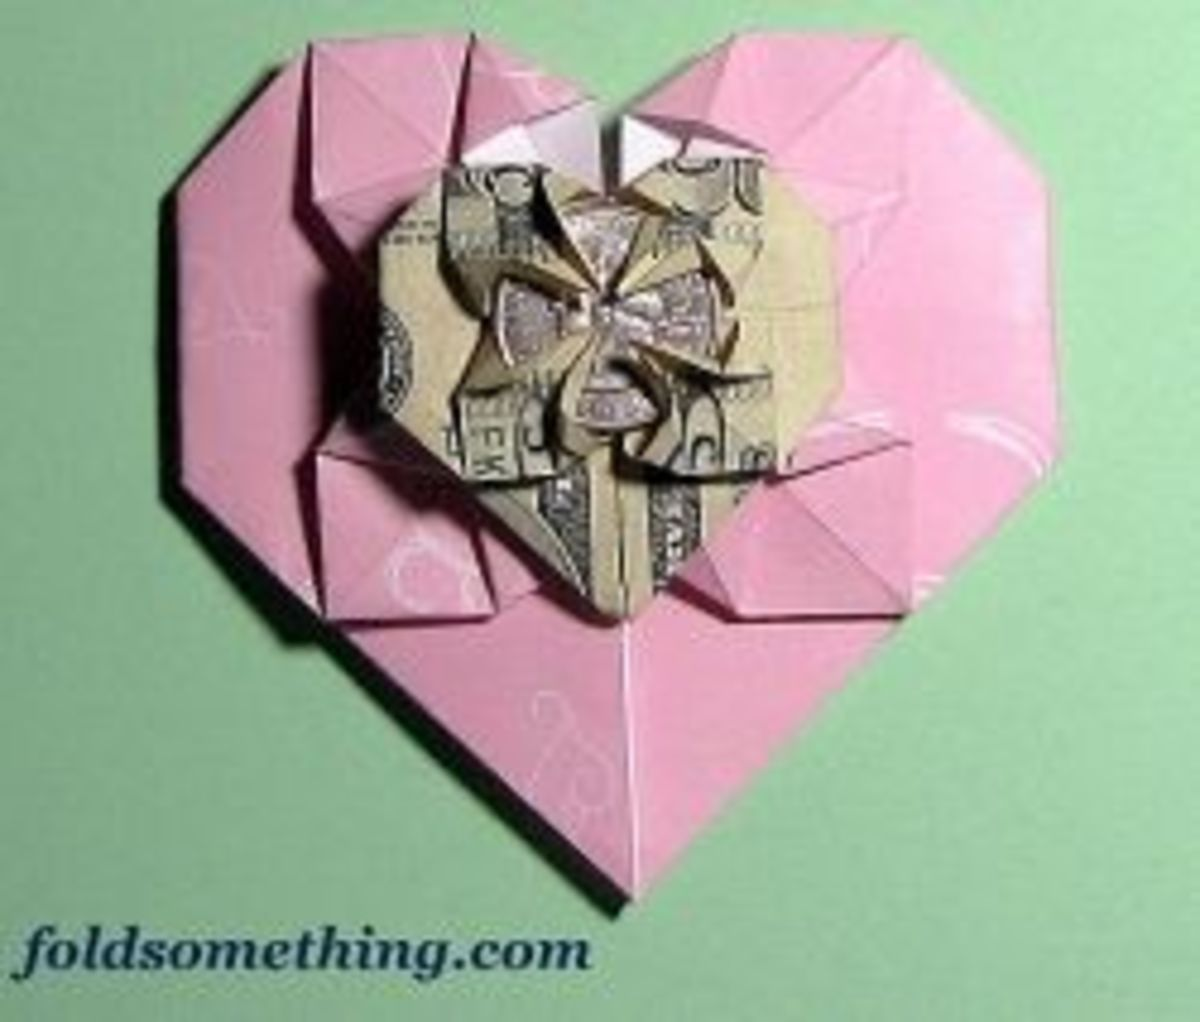 origami money heart to put on a money tree from foldsomething.com